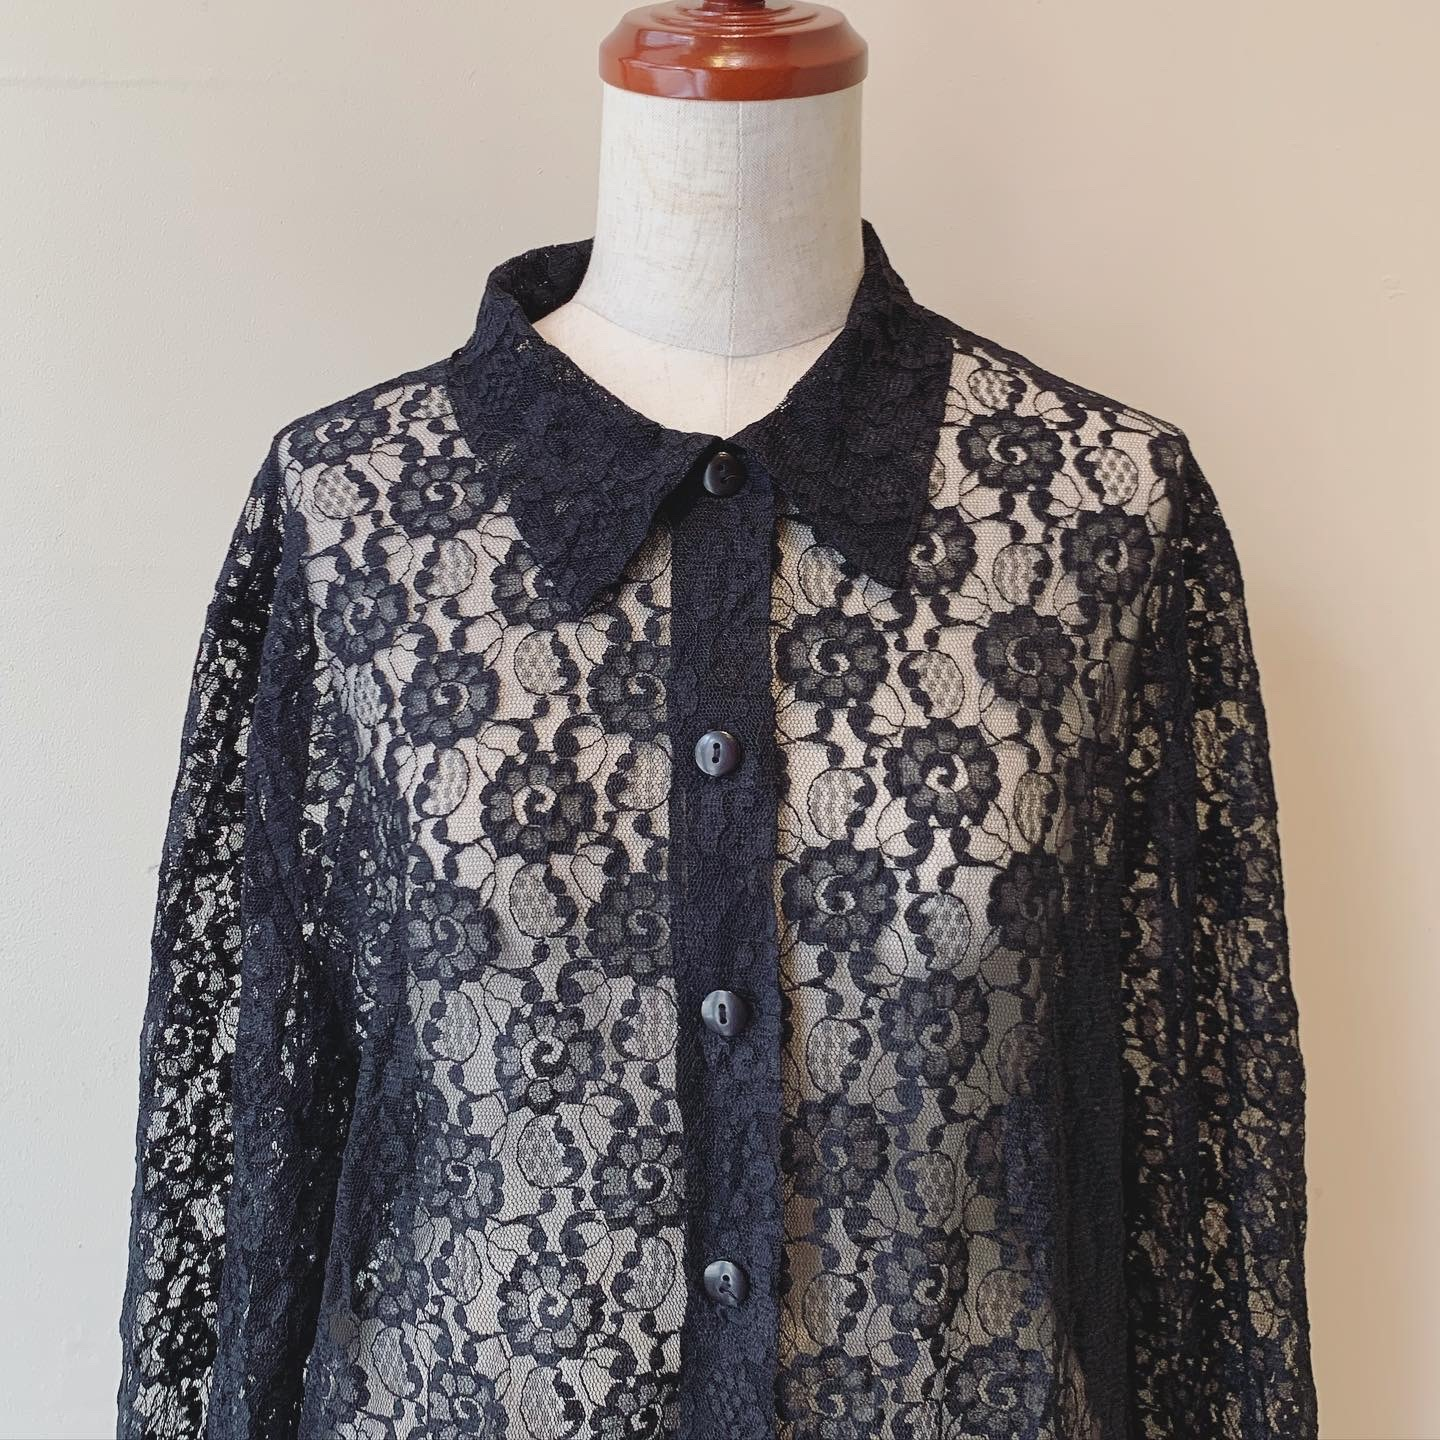 vintage made in France lace tops